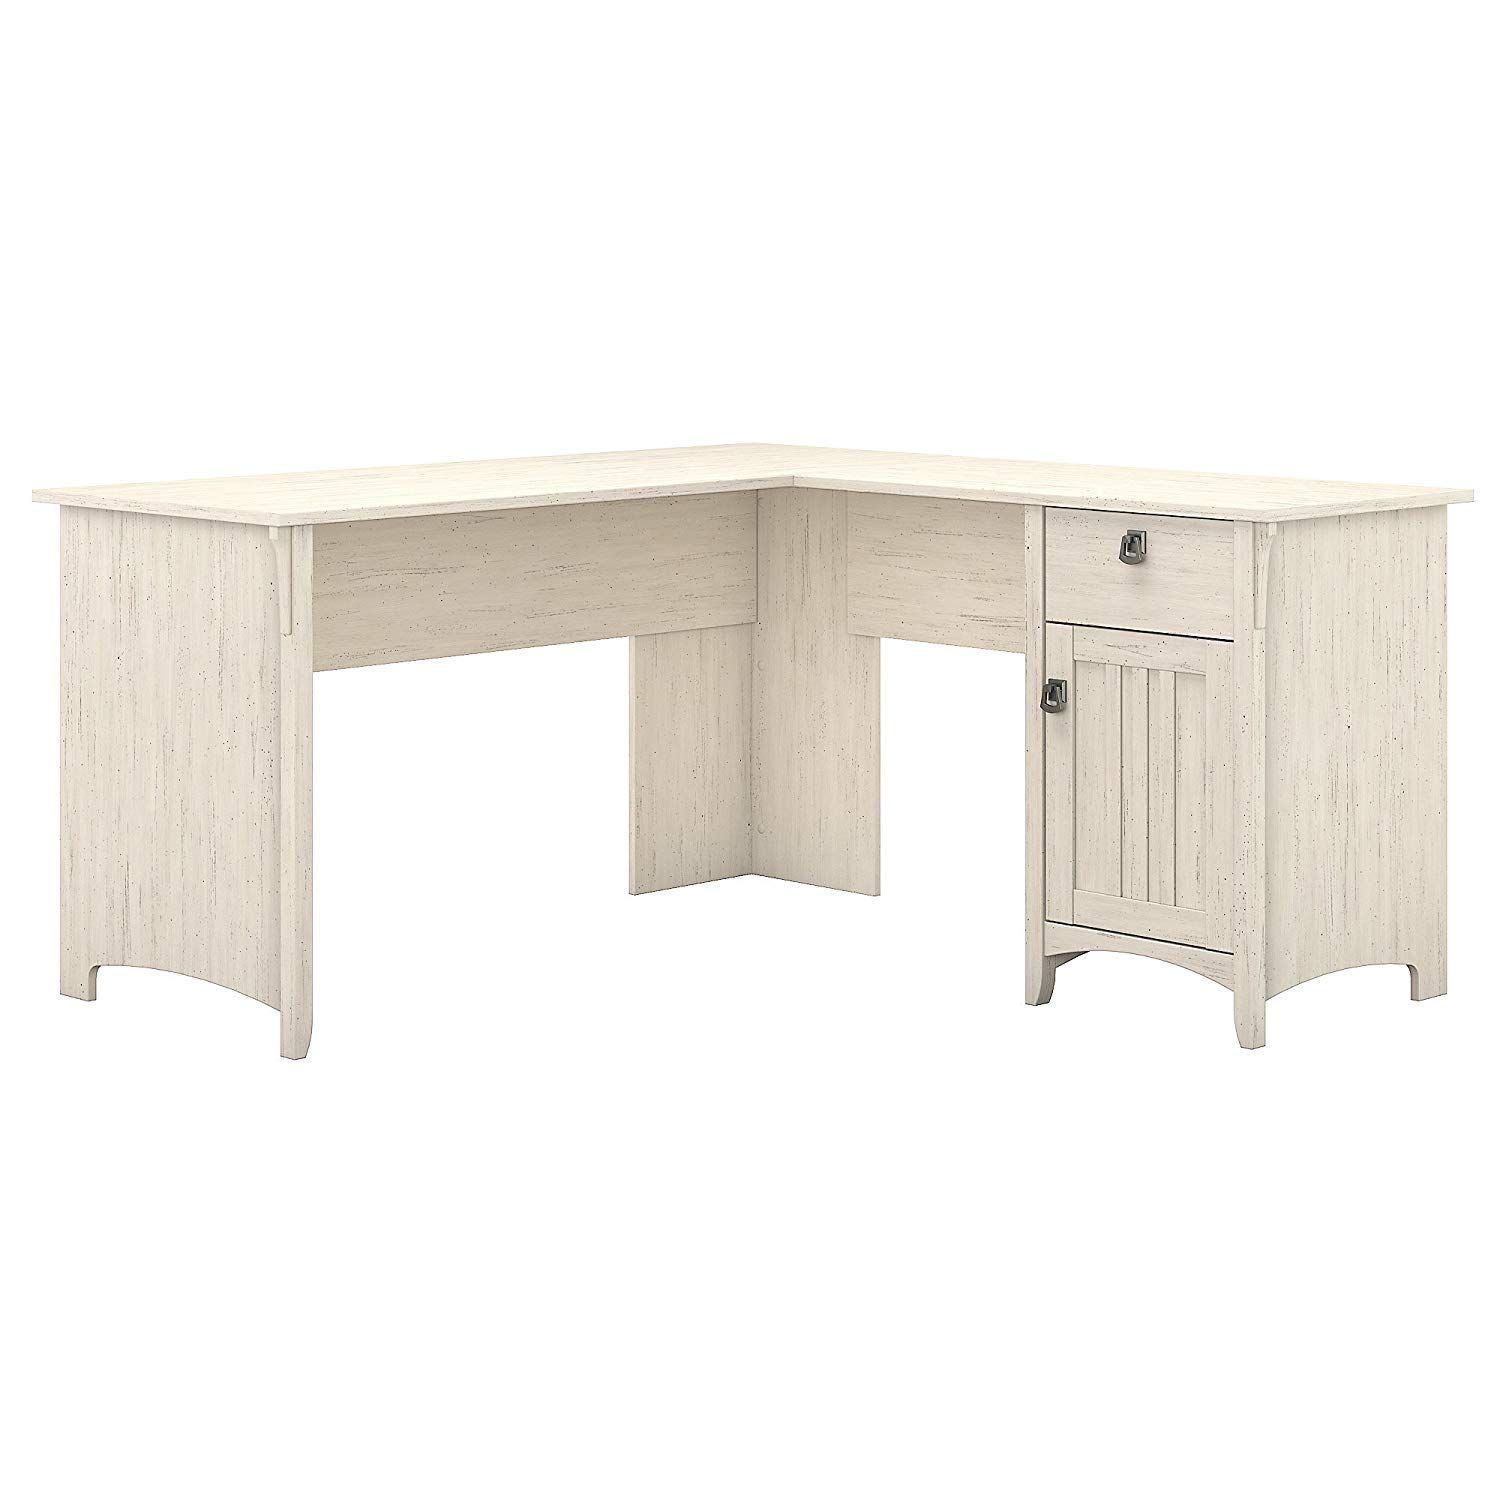 Amazon Com Bush Furniture Salinas L Shaped Desk With Storage In Antique White Kitchen Dining Bush Furniture Desk Storage L Shaped Corner Desk